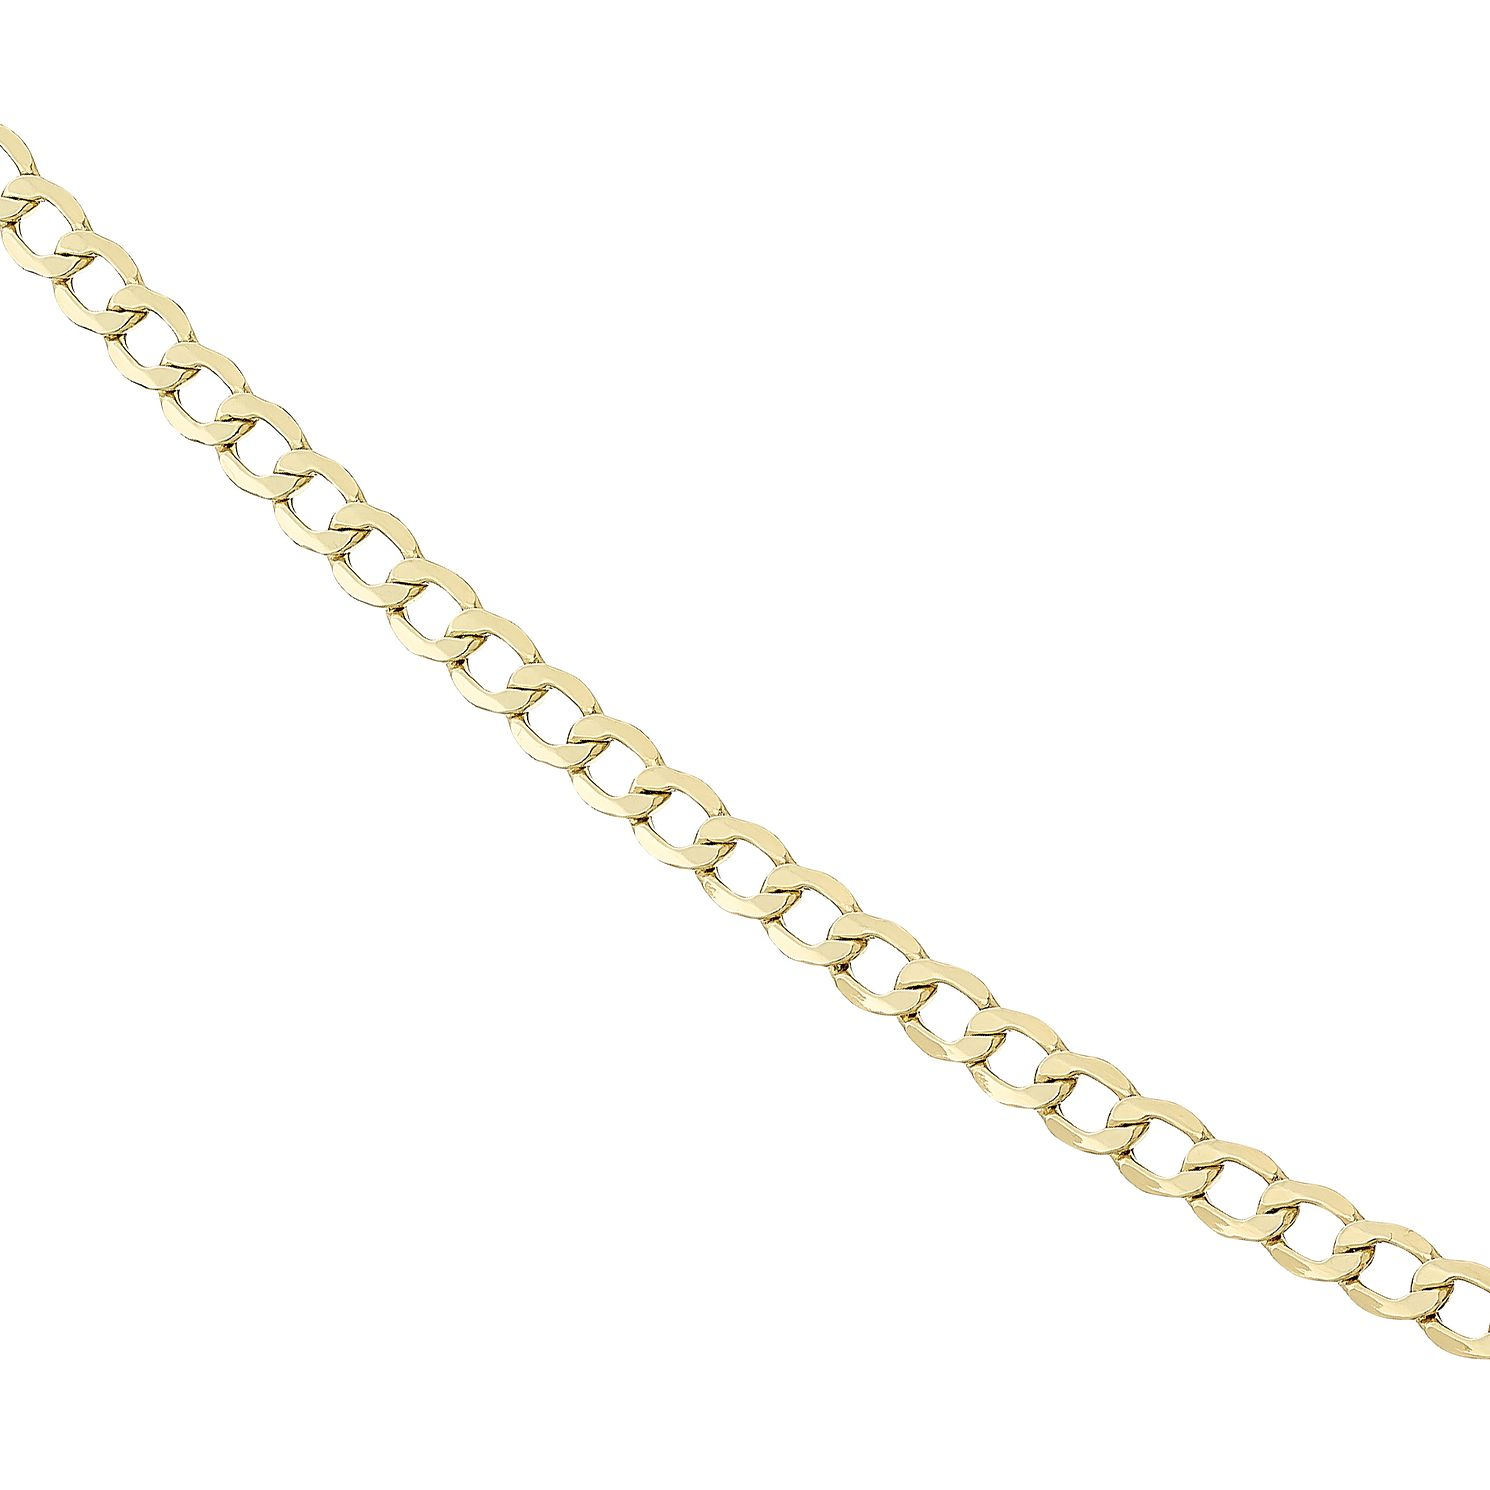 new chains golden l design plain long rope lastest gold chain necklace